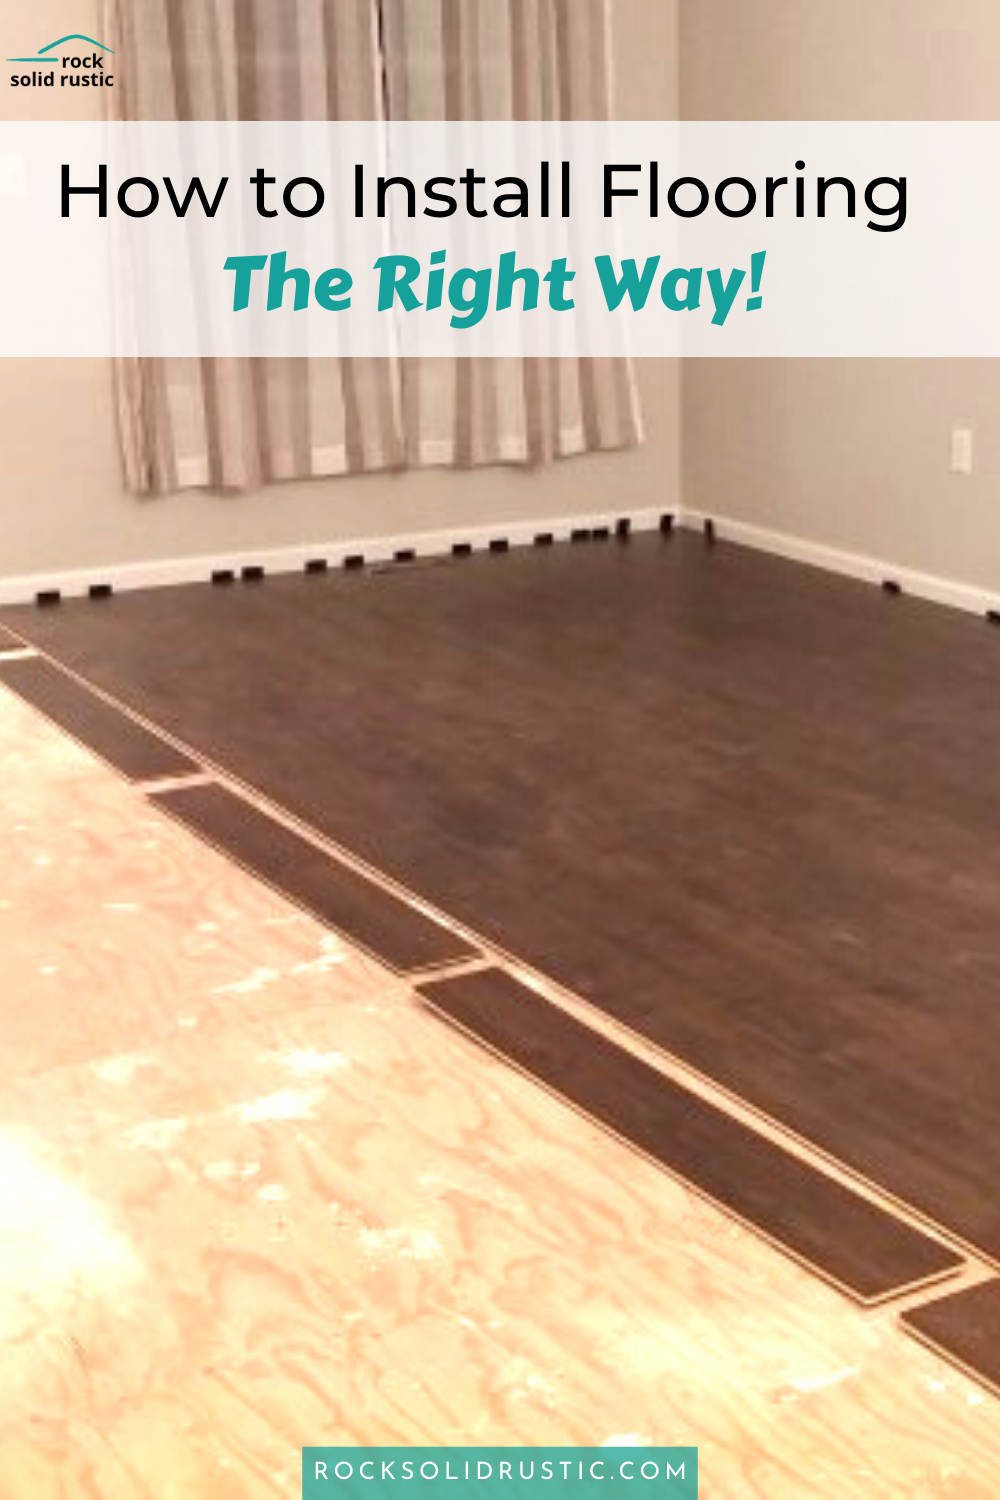 How To Install Flooring The Right Way In 2020 Pergo Flooring Floor Installation Flooring